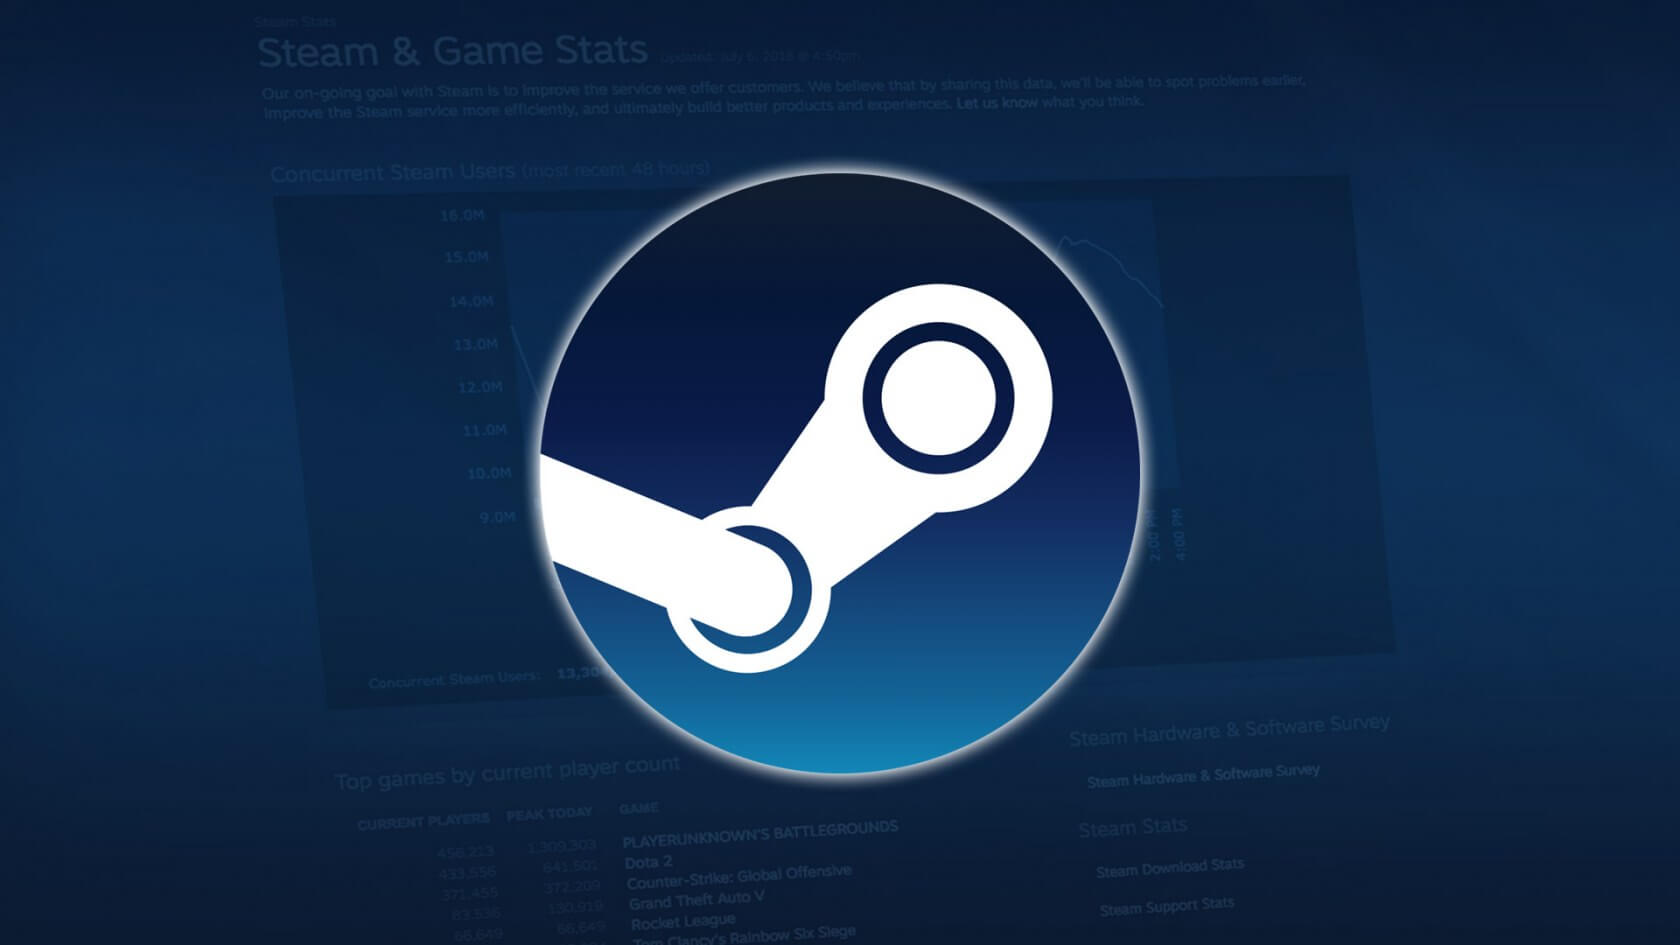 Valve's 30 percent revenue cut was 'killing PC gaming,' says former